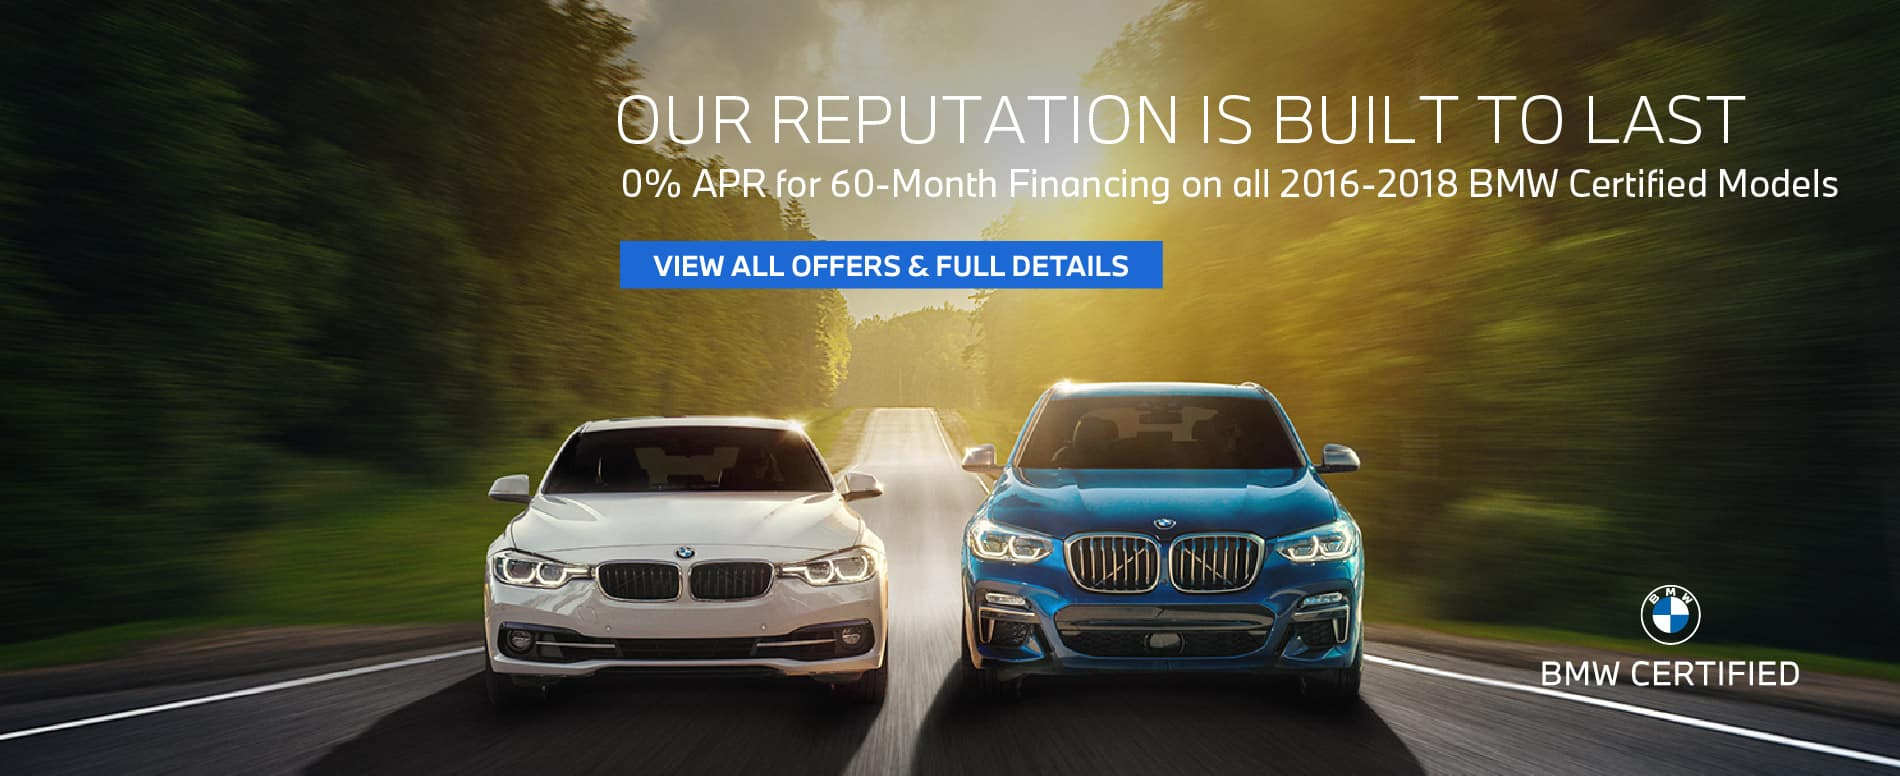 Autobahn Fort Worth | Certified Pre-Owned BMW Models 0% Financing